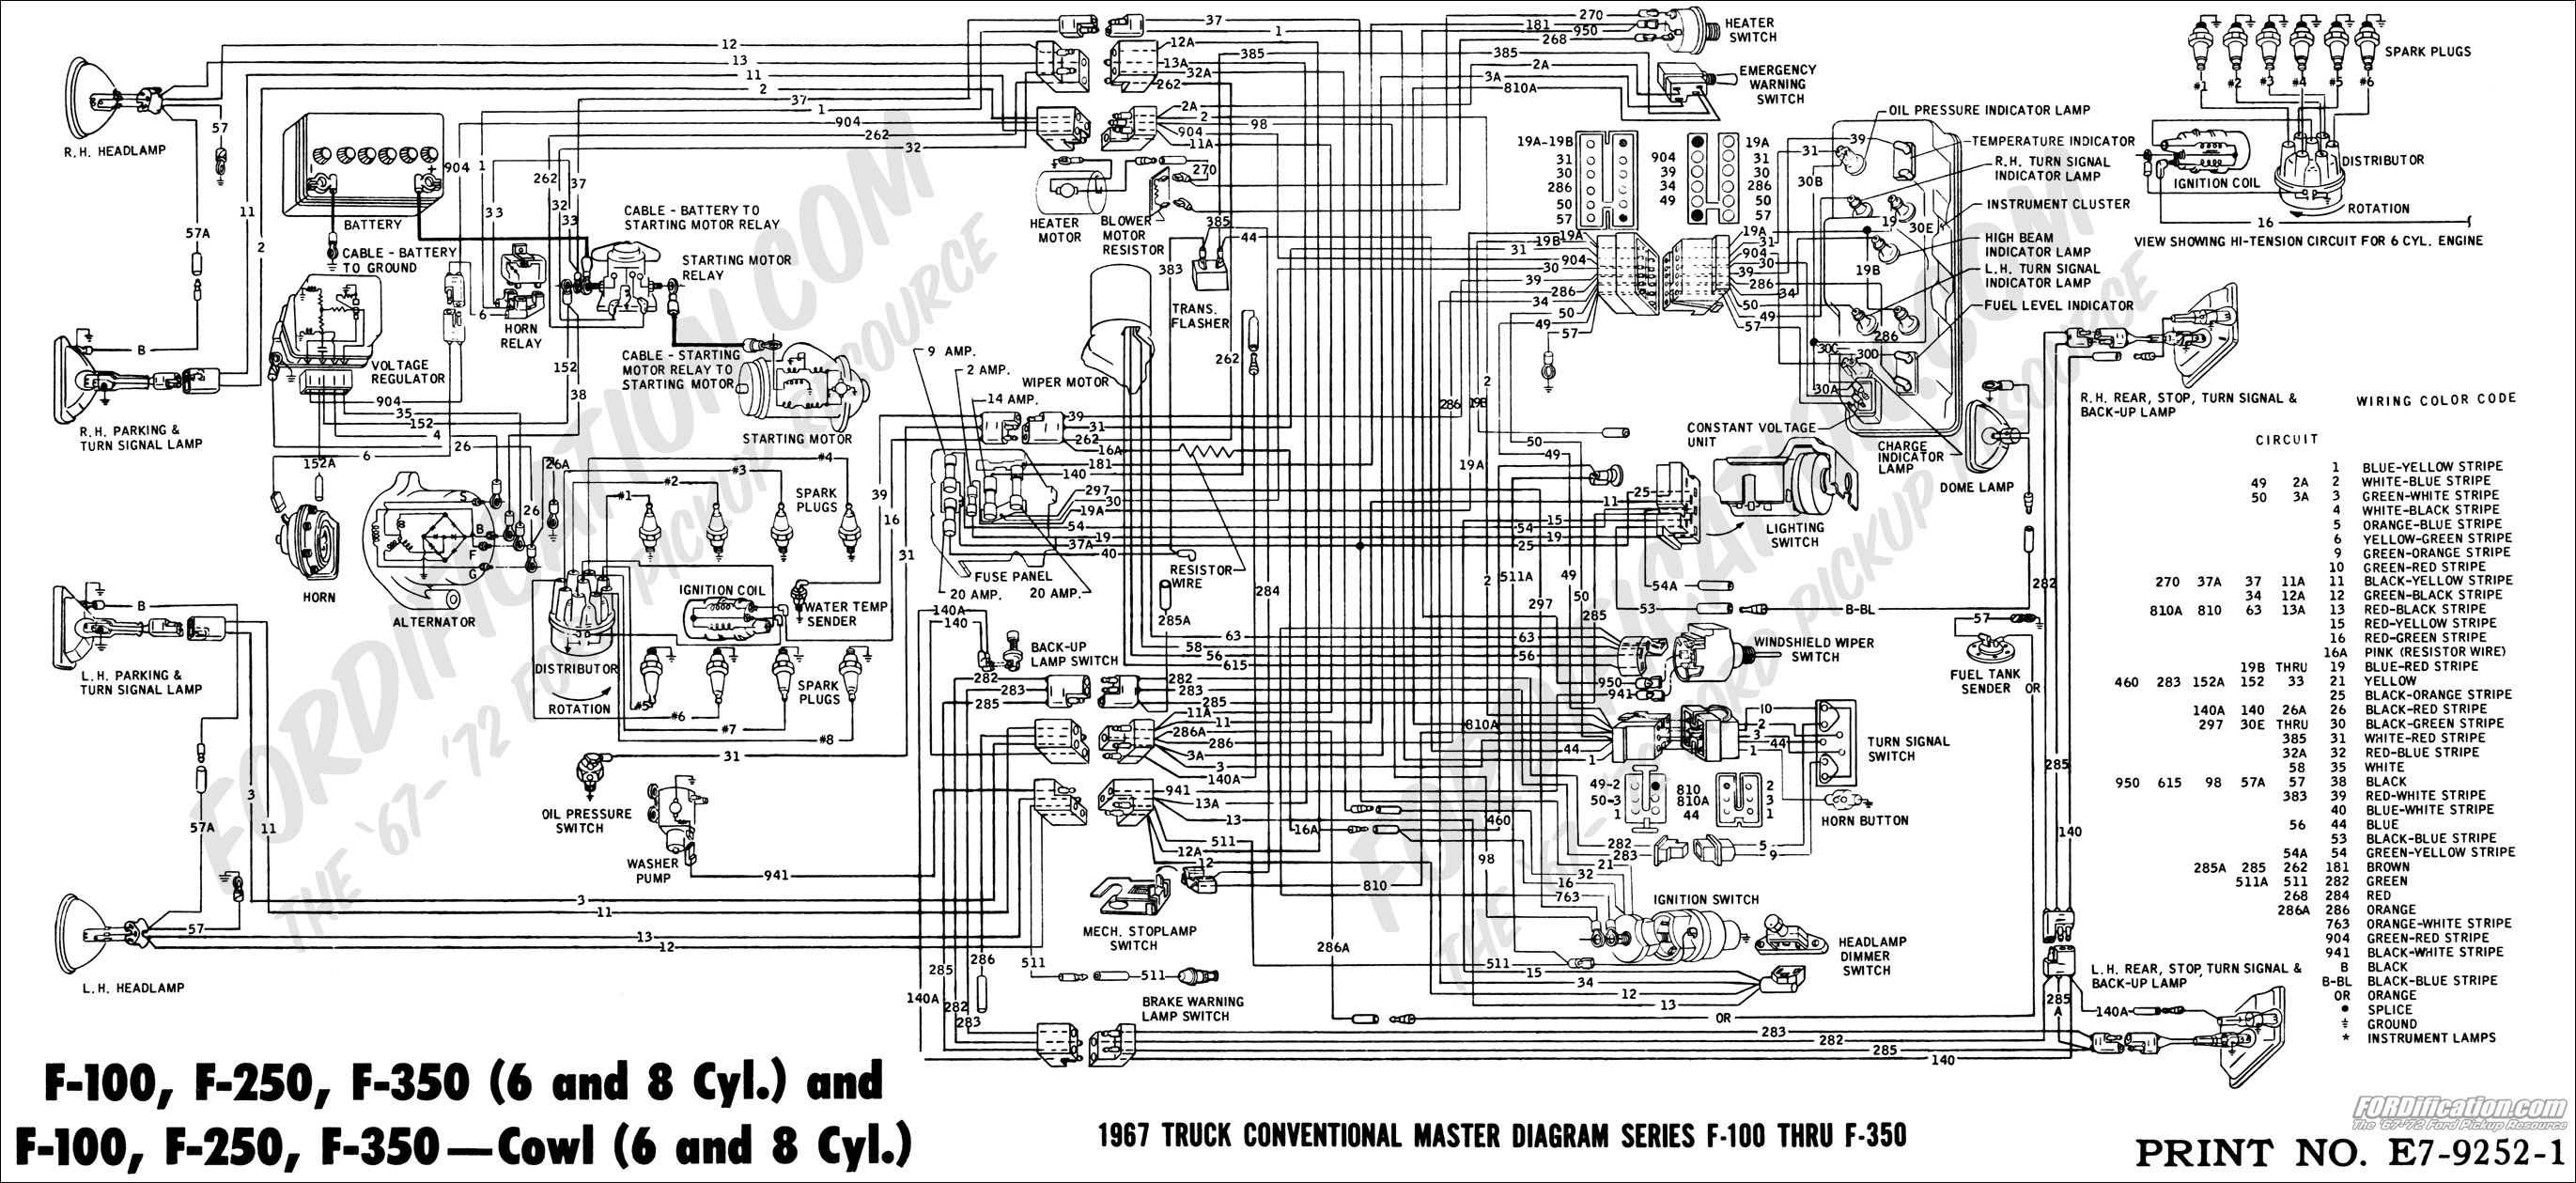 Msd Al6 Wiring Diagram 73 Vw Beetle Library 1974 Ford Electronic Ignition Detailed Schematics Rh Mrskindsclass Com 6401